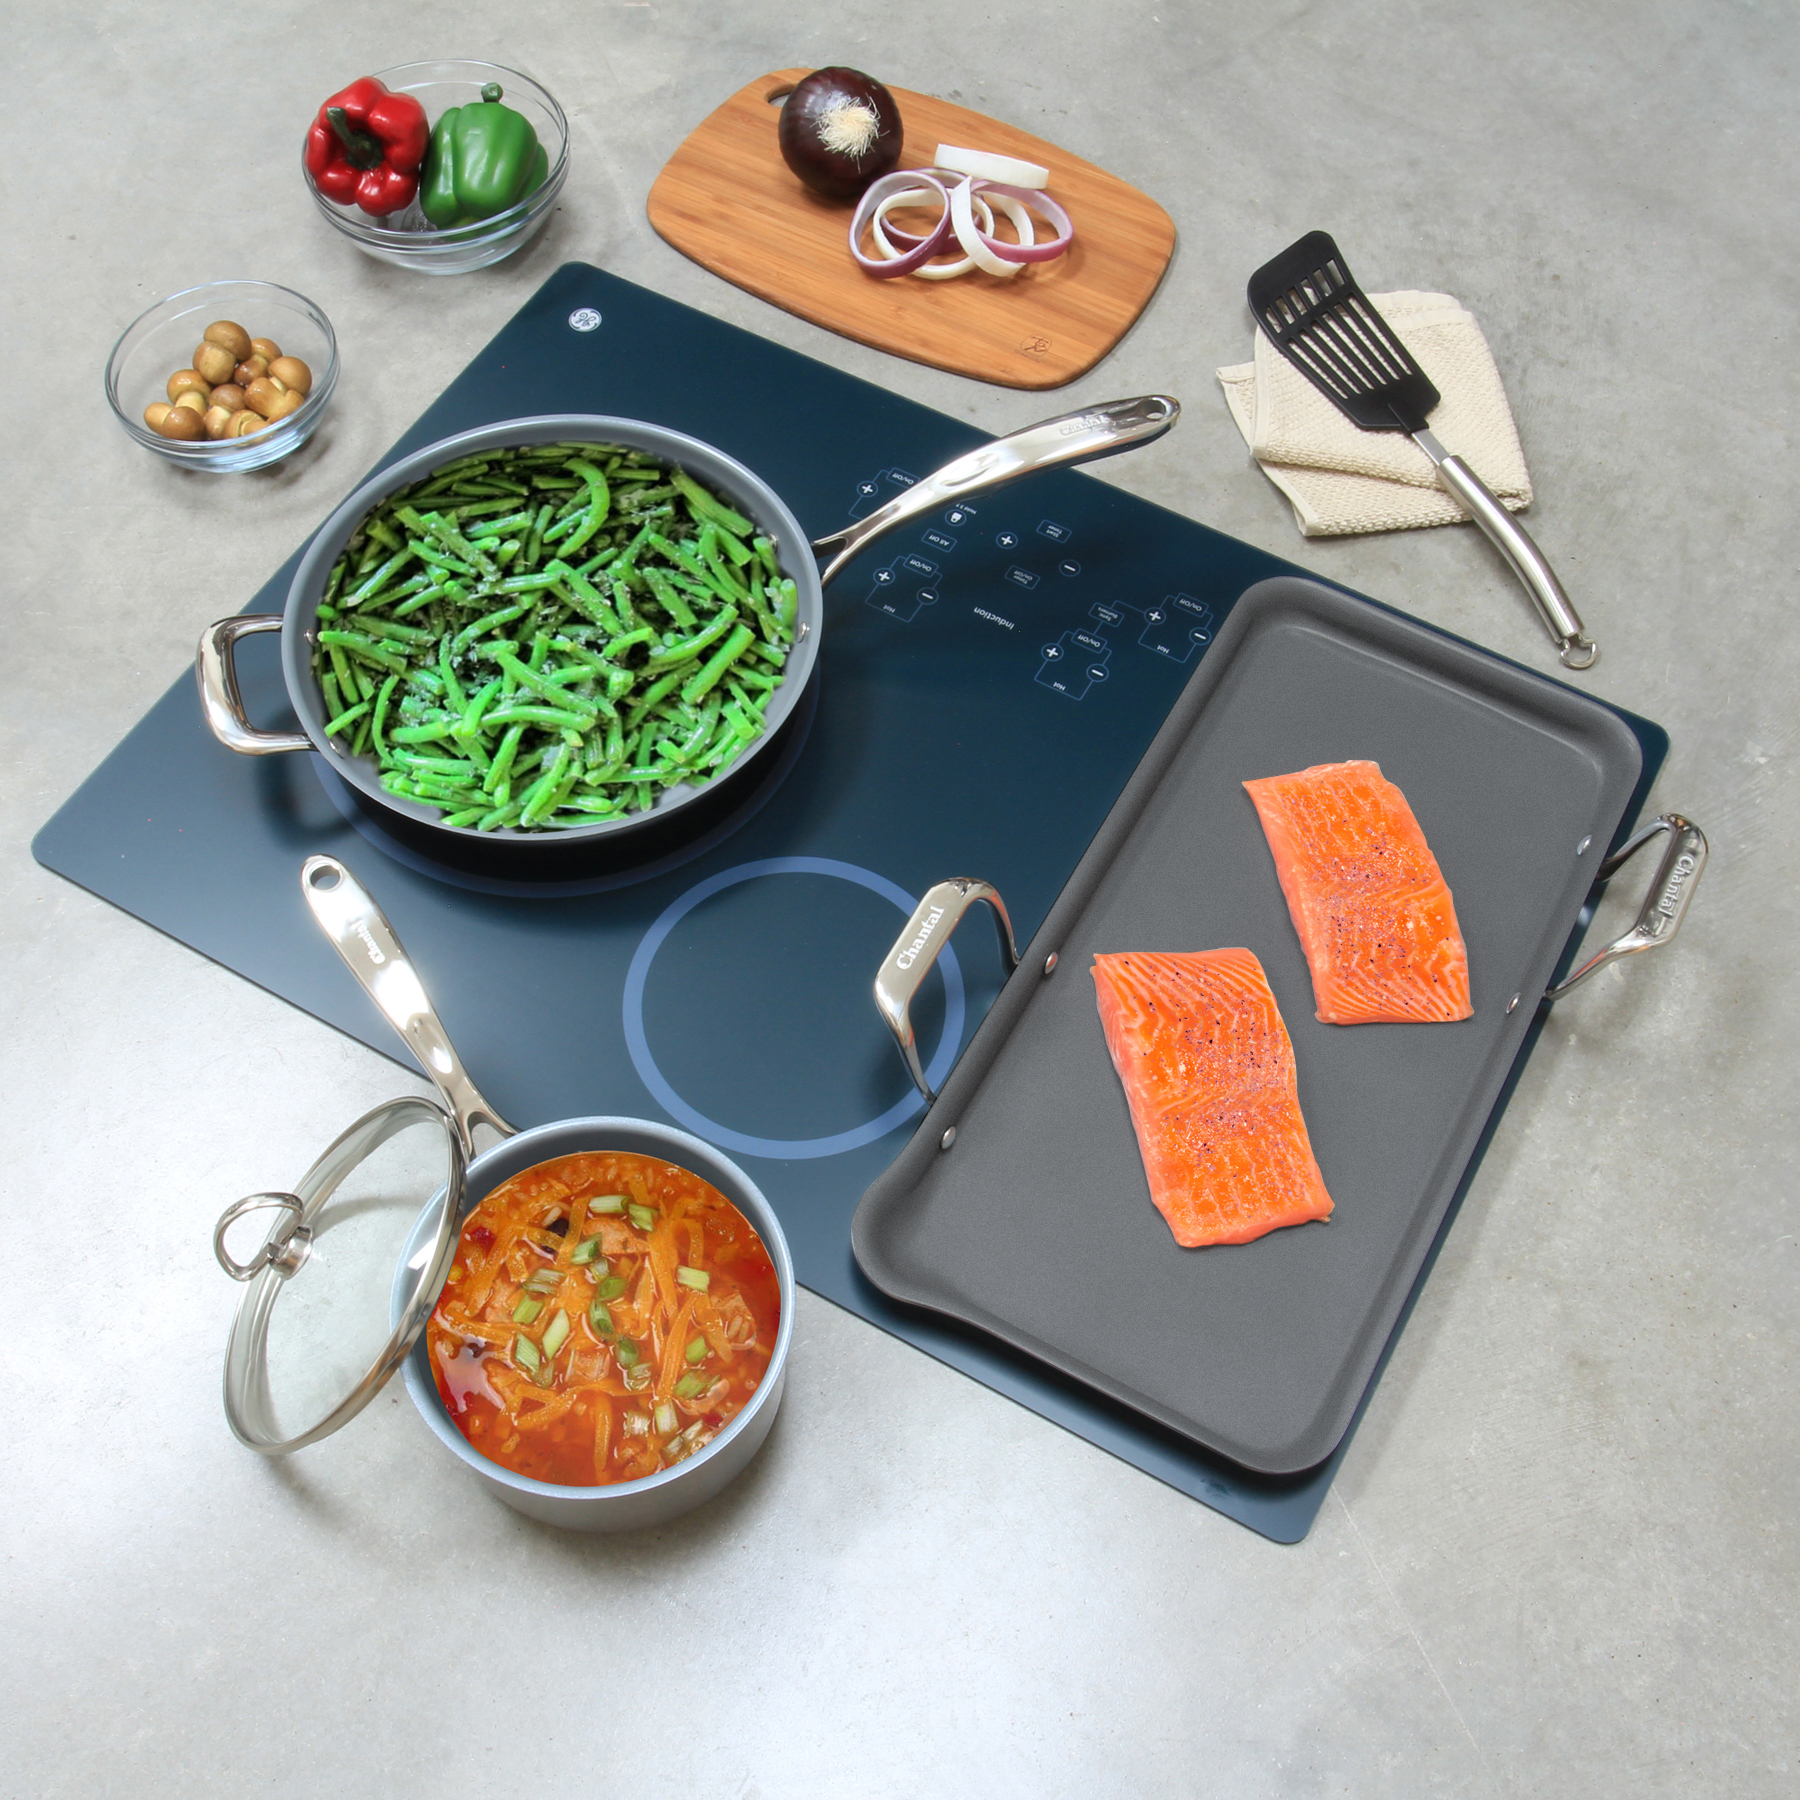 Stainless Steel nonstick griddle set chantal induction 21 steel collection no nickel with 4 pieces